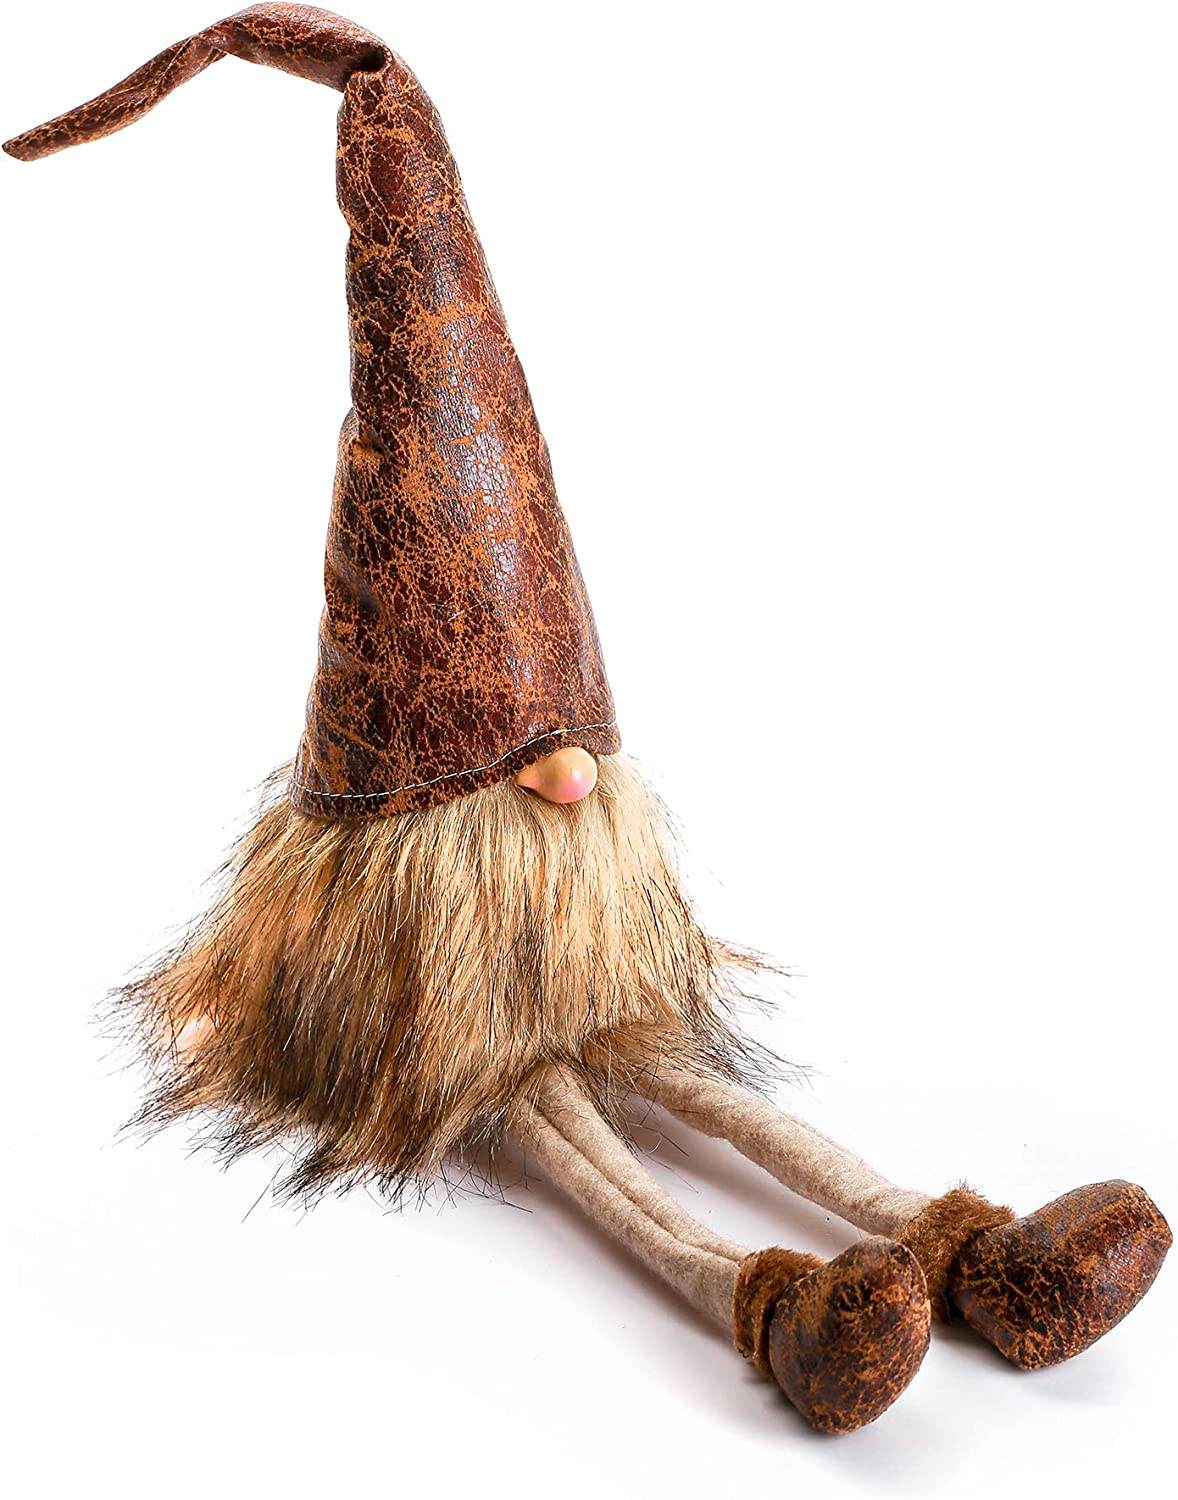 ITOMTE Handmade Swedish Gnome, Scandinavian Tomte, Yule Santa Nisse, Nordic Figurine, Plush Elf Toy, Home Decor, Winter Table Ornament, Christmas Decorations, Holiday Presents - 20.5 Inches, Leather